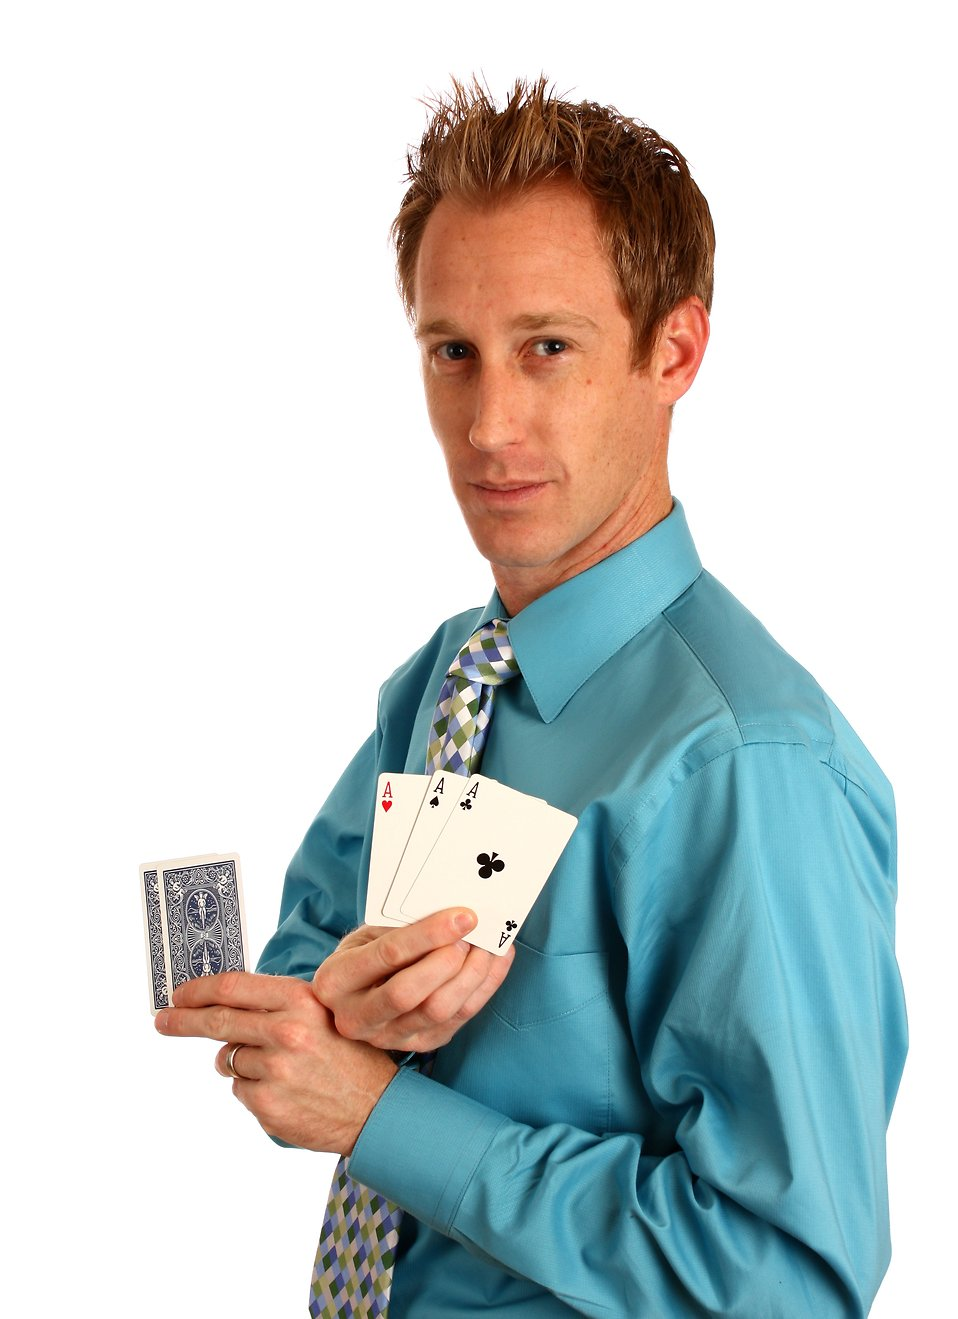 A young businessman holding a hand of playing cards : Free Stock Photo